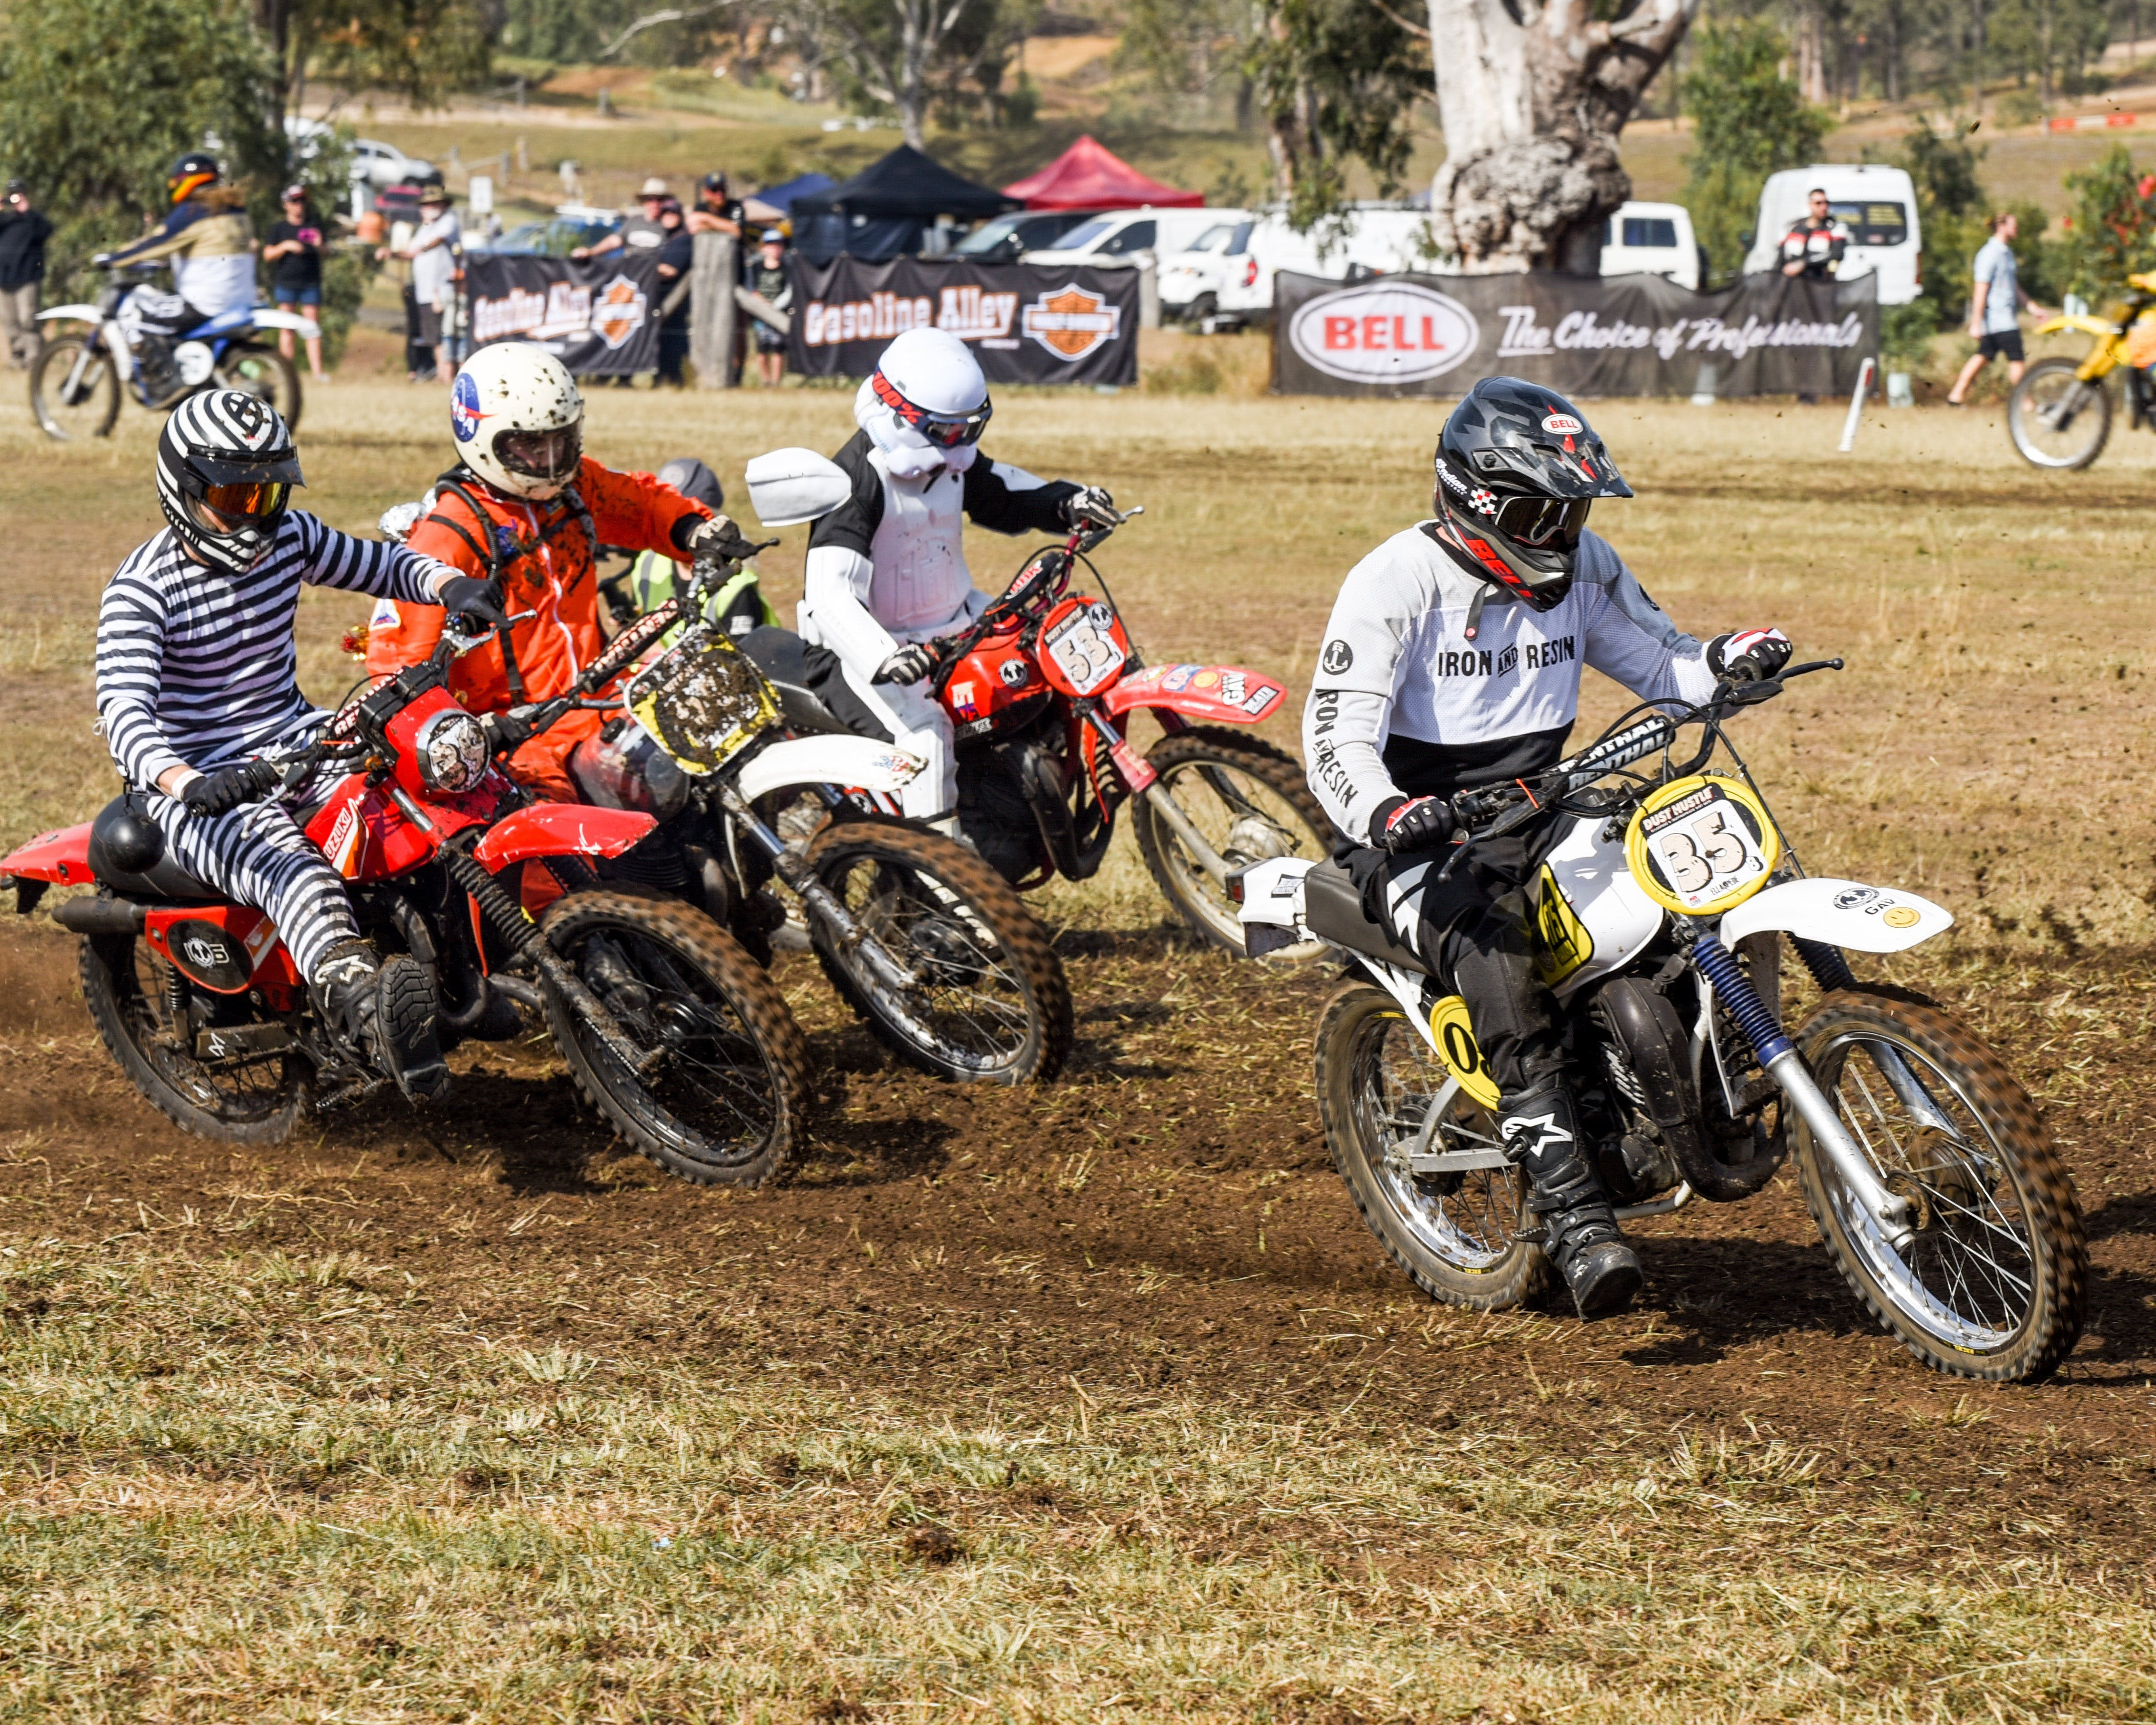 Dust Hustle Queensland Moto Park - Accommodation Cooktown